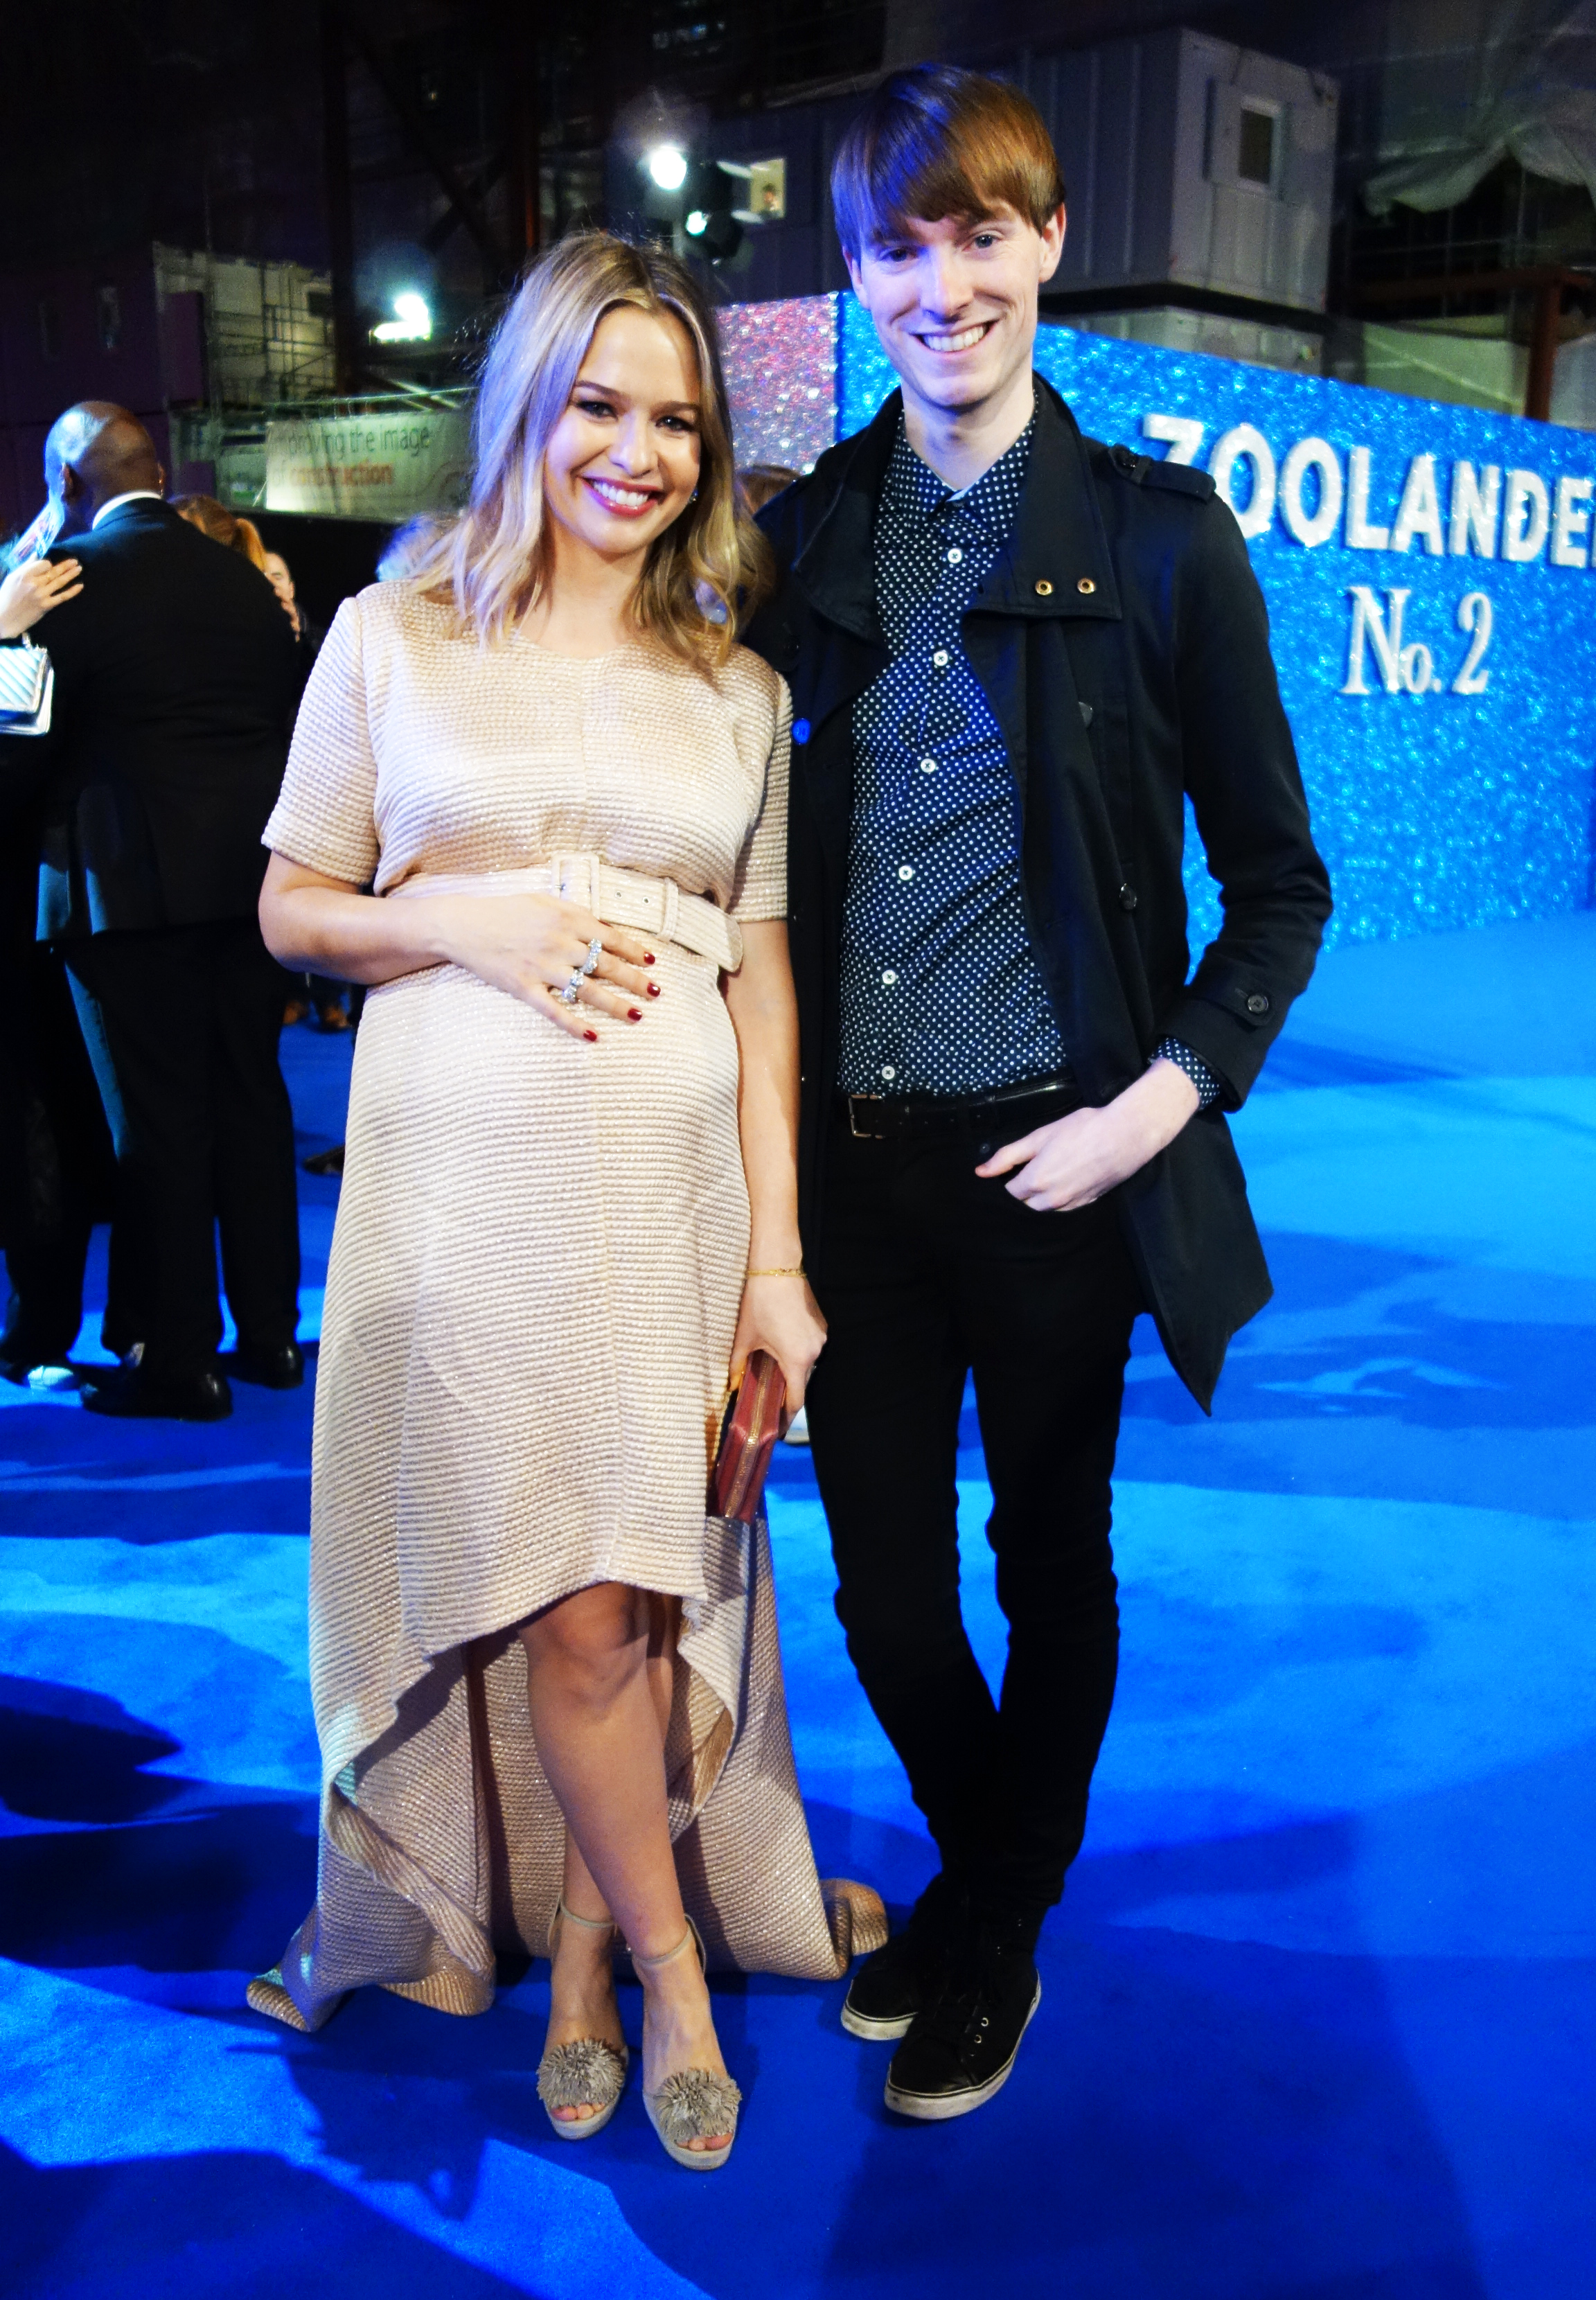 Marissa Hermer & Richard Brownlie-Marshall